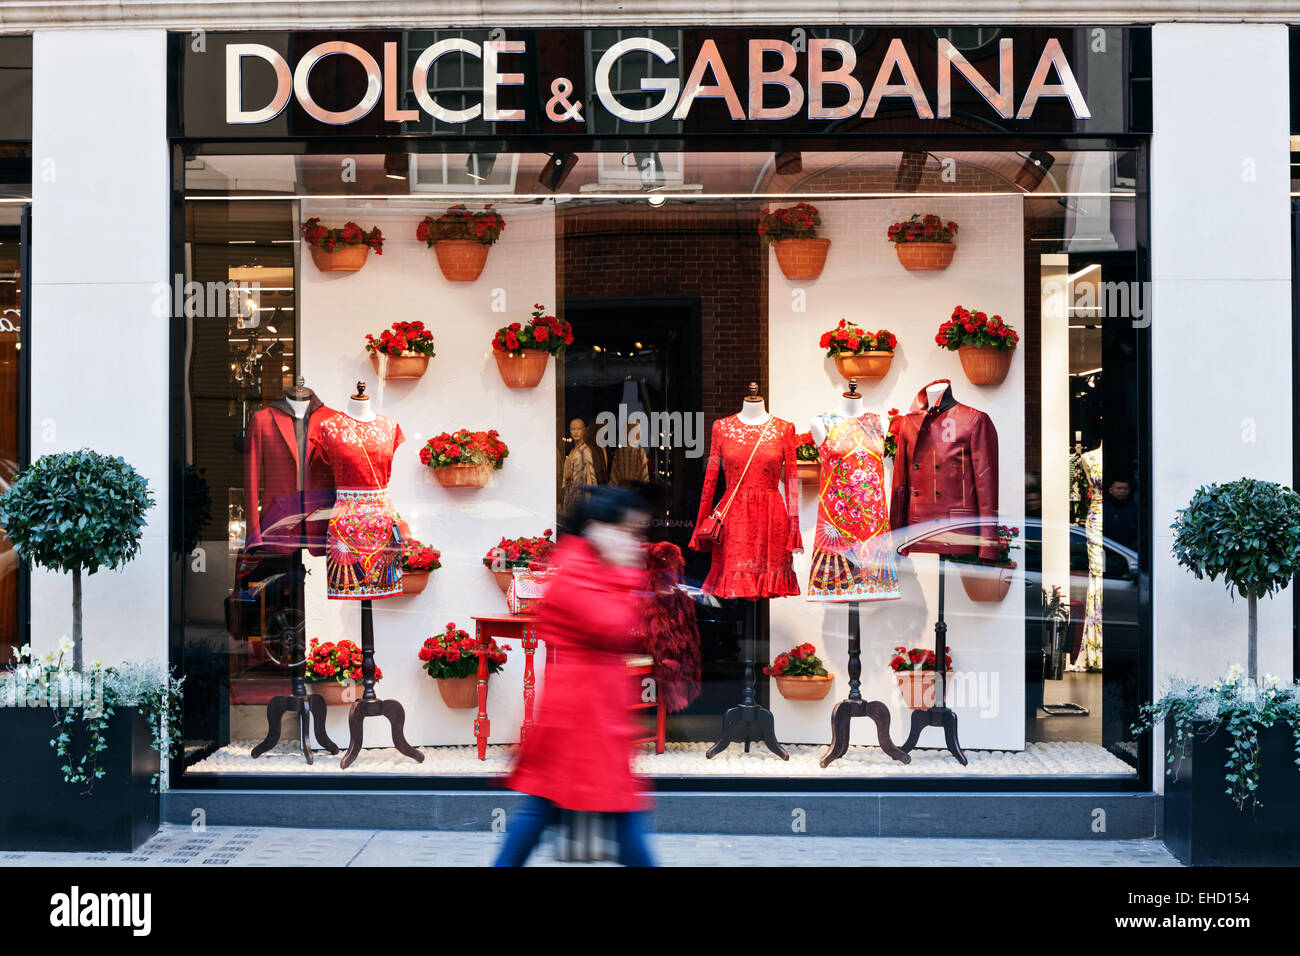 Dolce and Gabbana store window display in Mayfair, London. - Stock Image